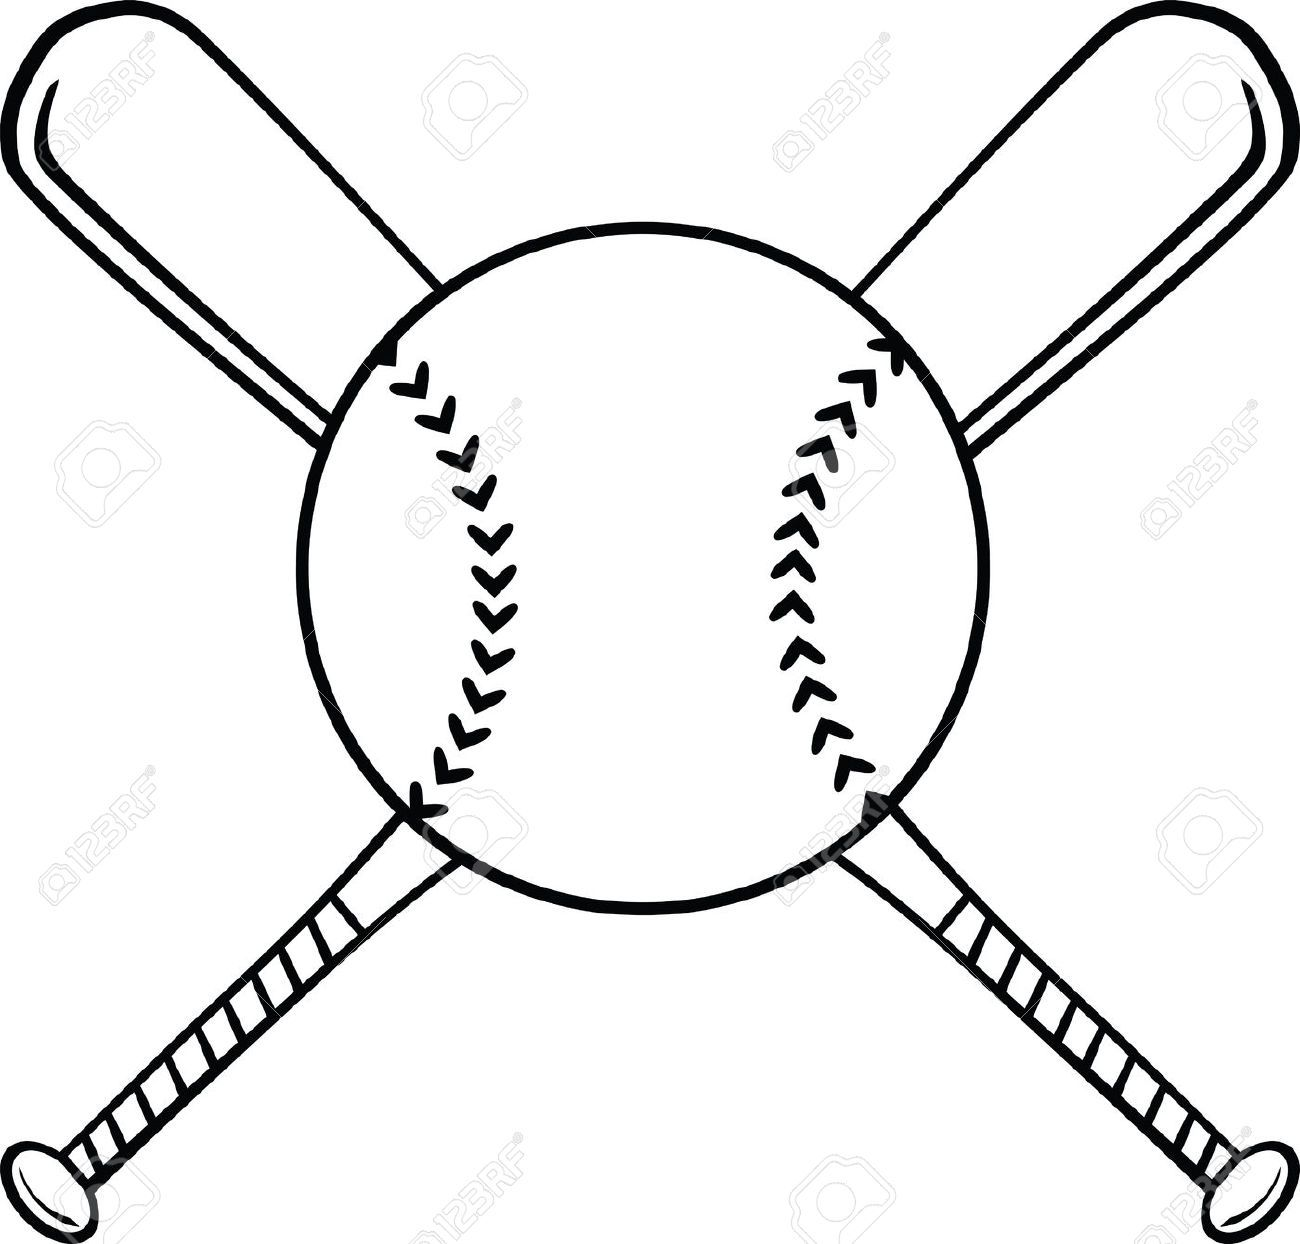 softball ball and bat clipart clipartfox silhouette pinterest rh pinterest com baseball bat and ball clip art baseball glove and bat clip art